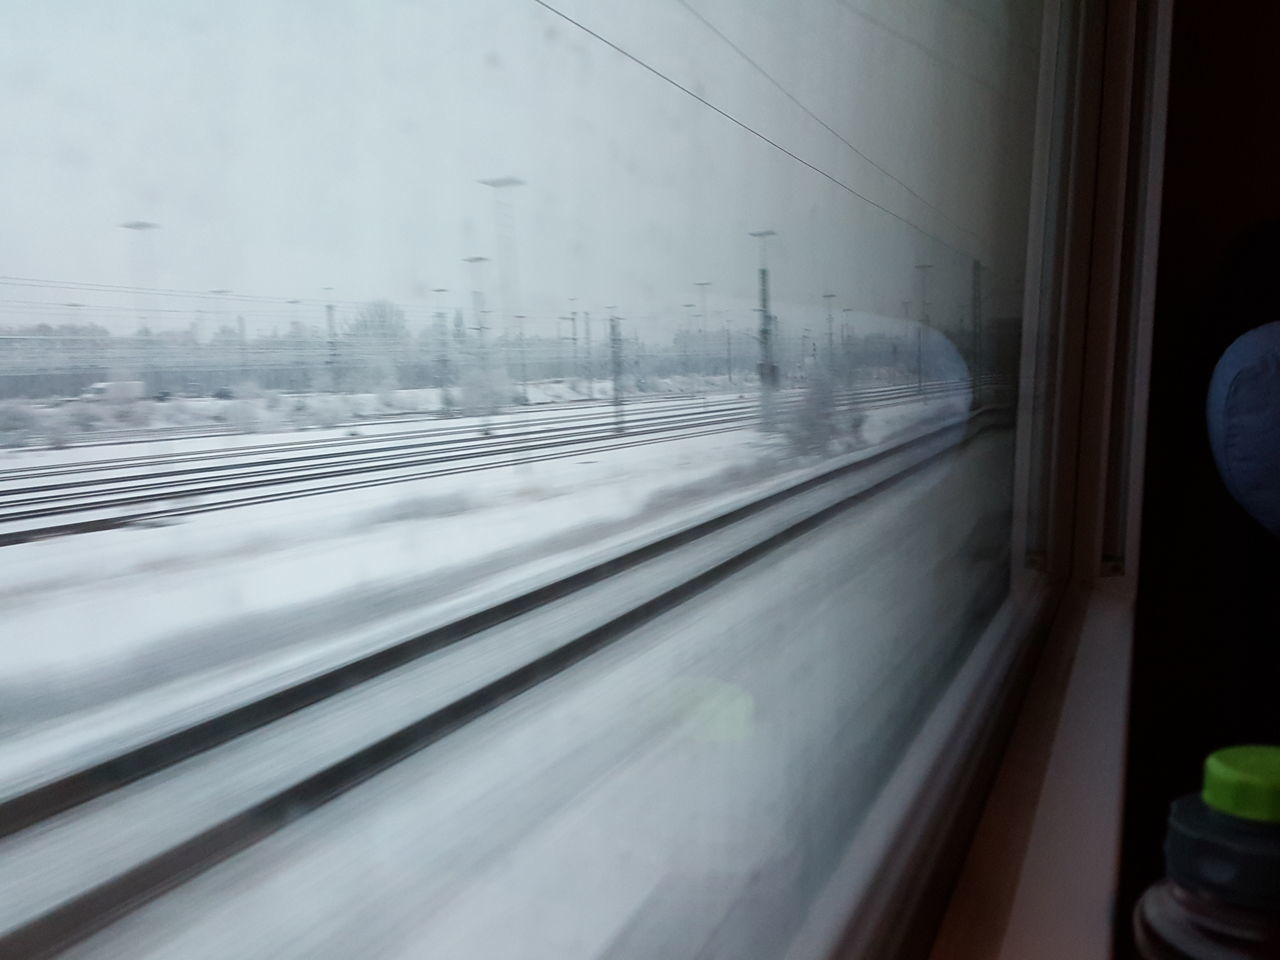 Train Ride Train Window Transportation On My Way On My Journey Domestic Room Fast Motion Snow White Snowy Snowy Landscape